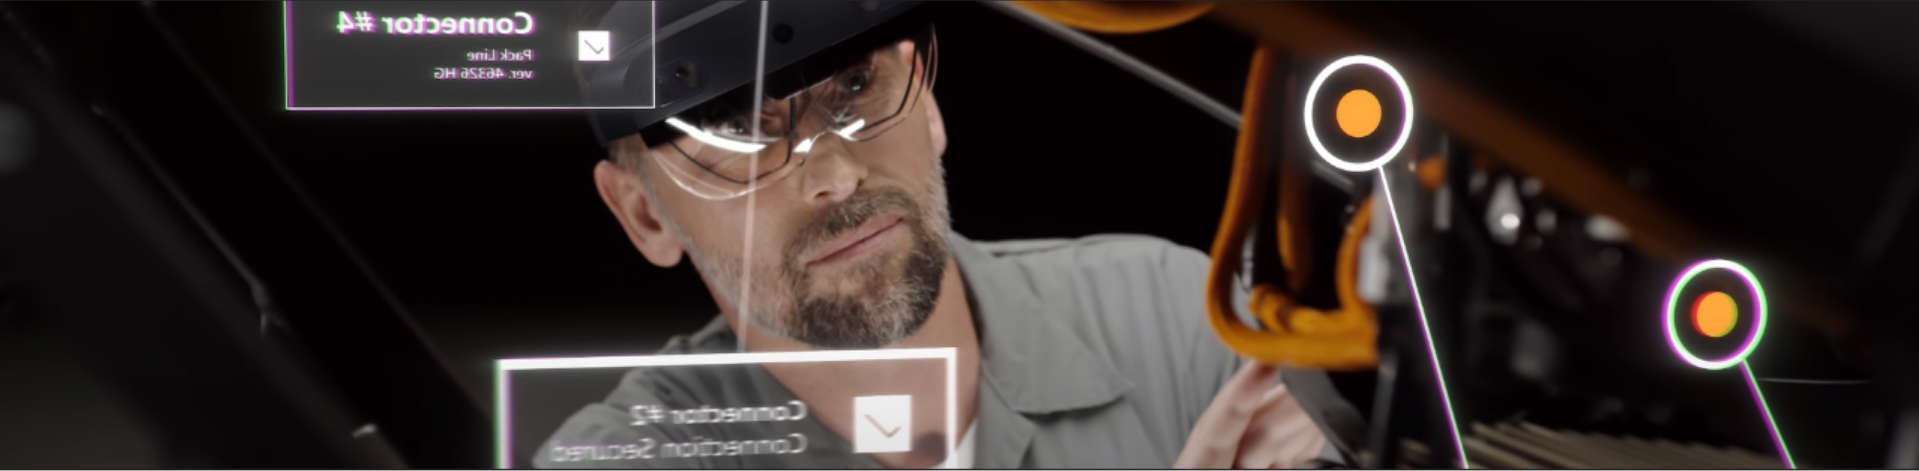 A person using HoloLens 2 to work on a machine.